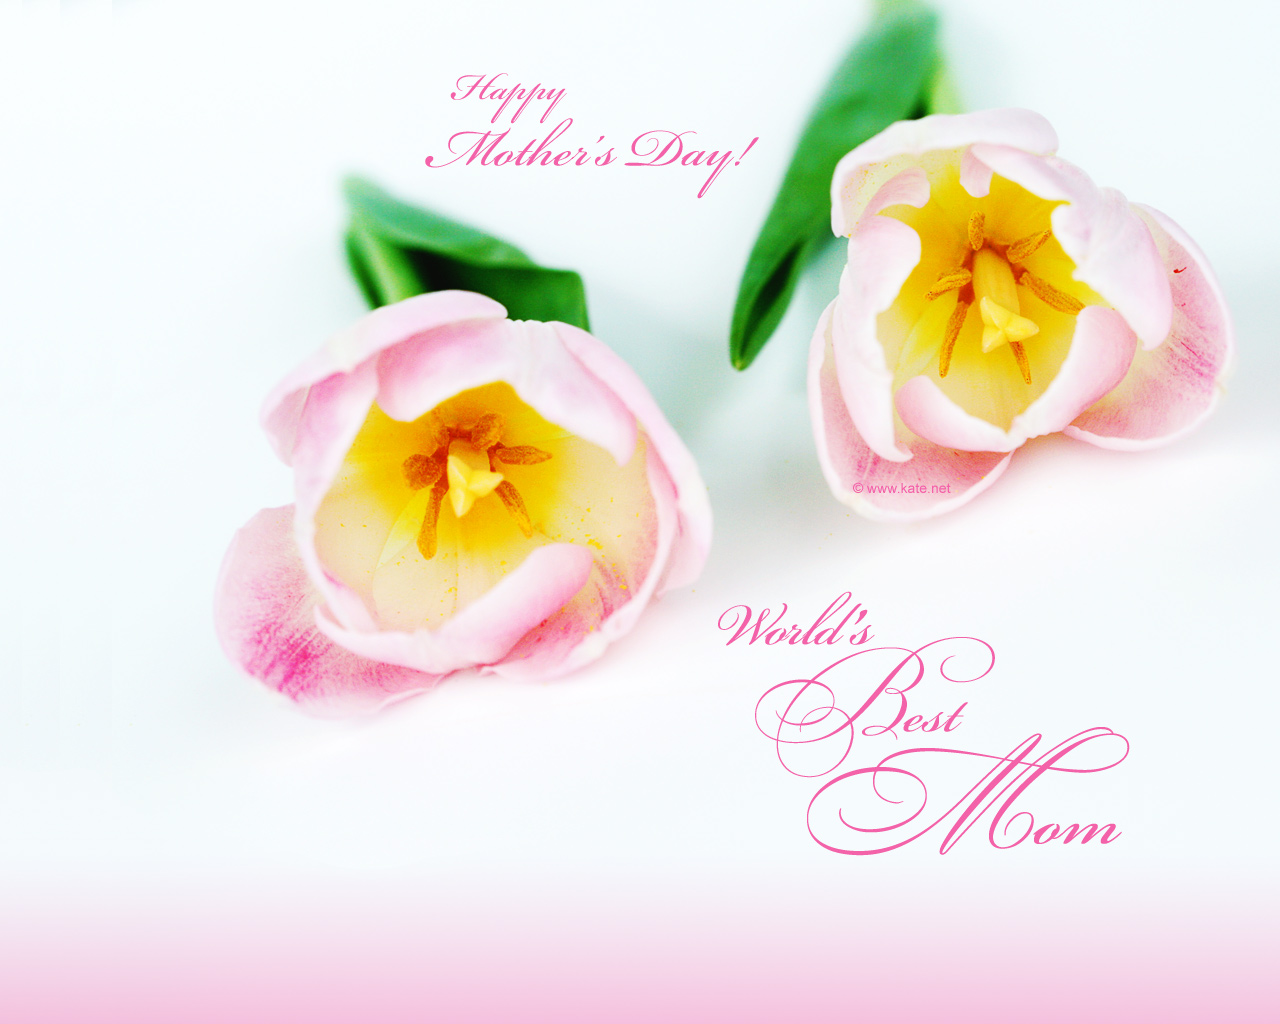 going to make a happy Mothers day PPT you can use these Mothers Day 1280x1024